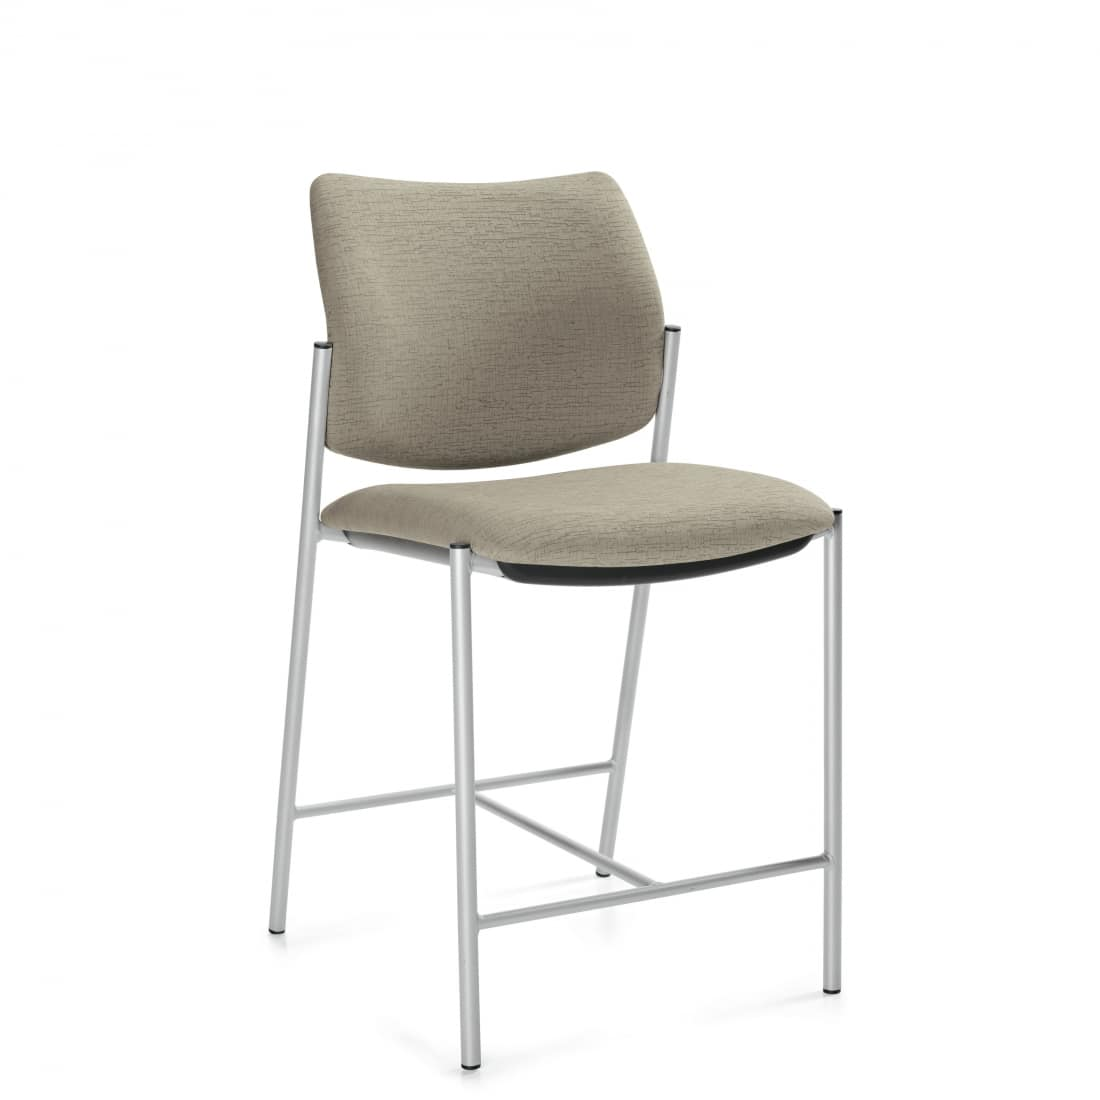 Sidero Guest Chair Collaborative Office Interiors